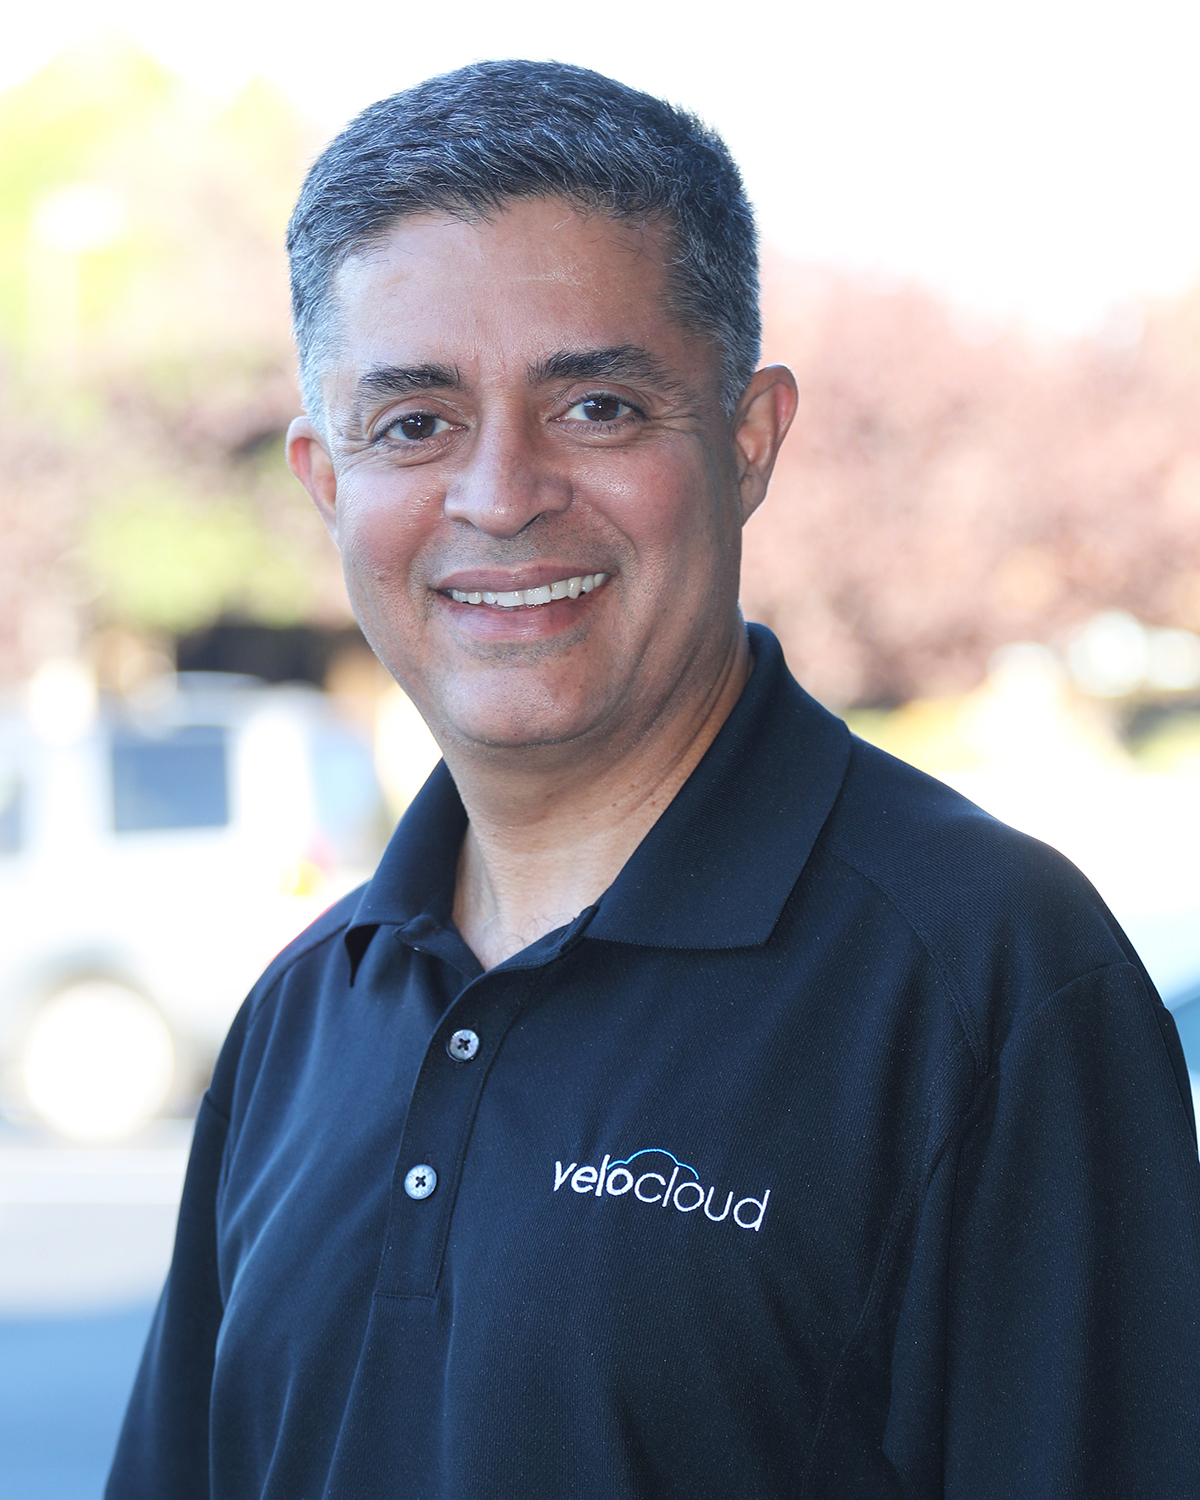 Sanjay Uppal is CEO and Co-founder of VeloCloud, which has closed a $35 million Series D round of funding, led by Hermes Growth Partners, to expand business, capacity and operations as the company accelerates new SD-WAN product development, supports larger customer rollouts, and dramatically increases sales and marketing in theaters worldwide. (Photo: Business Wire)